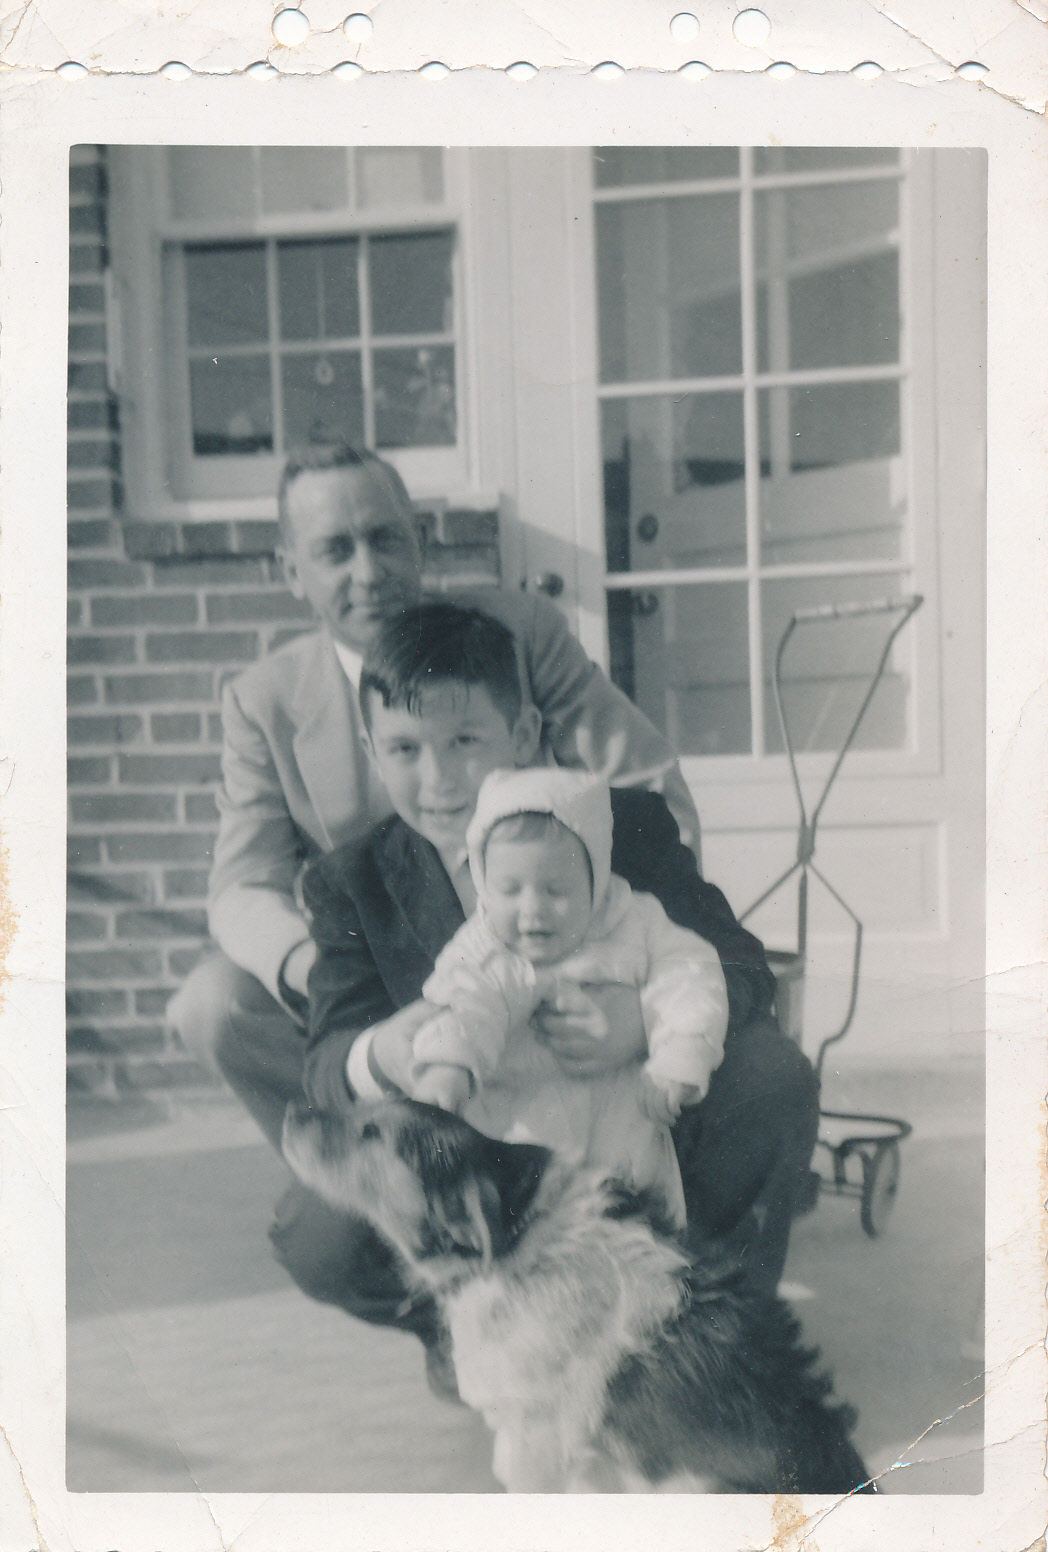 My Grandfather and Dad with Aunt Betty as a baby.